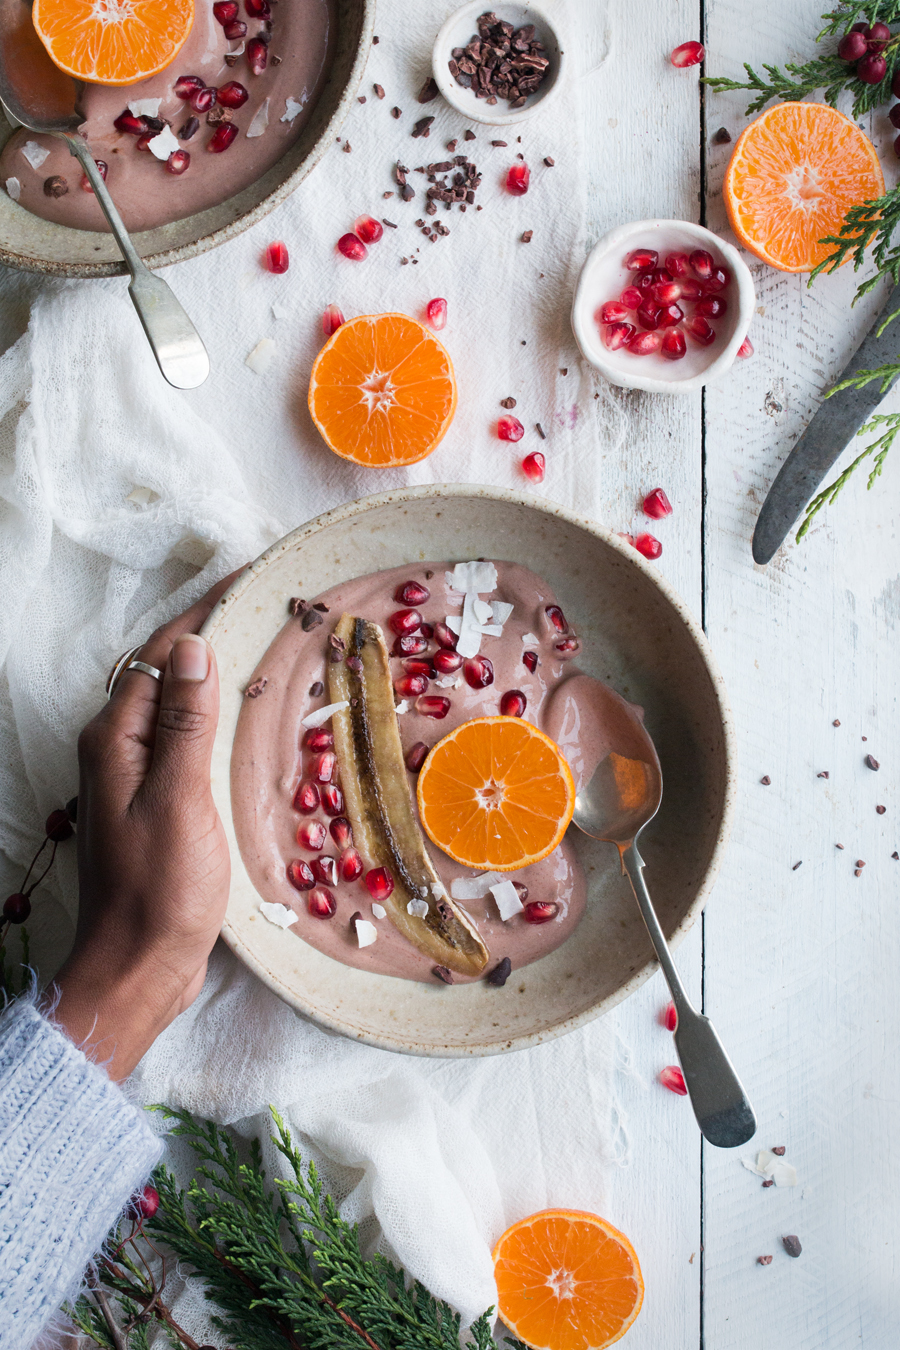 London food photography and food styling workshop - The Little Plantation